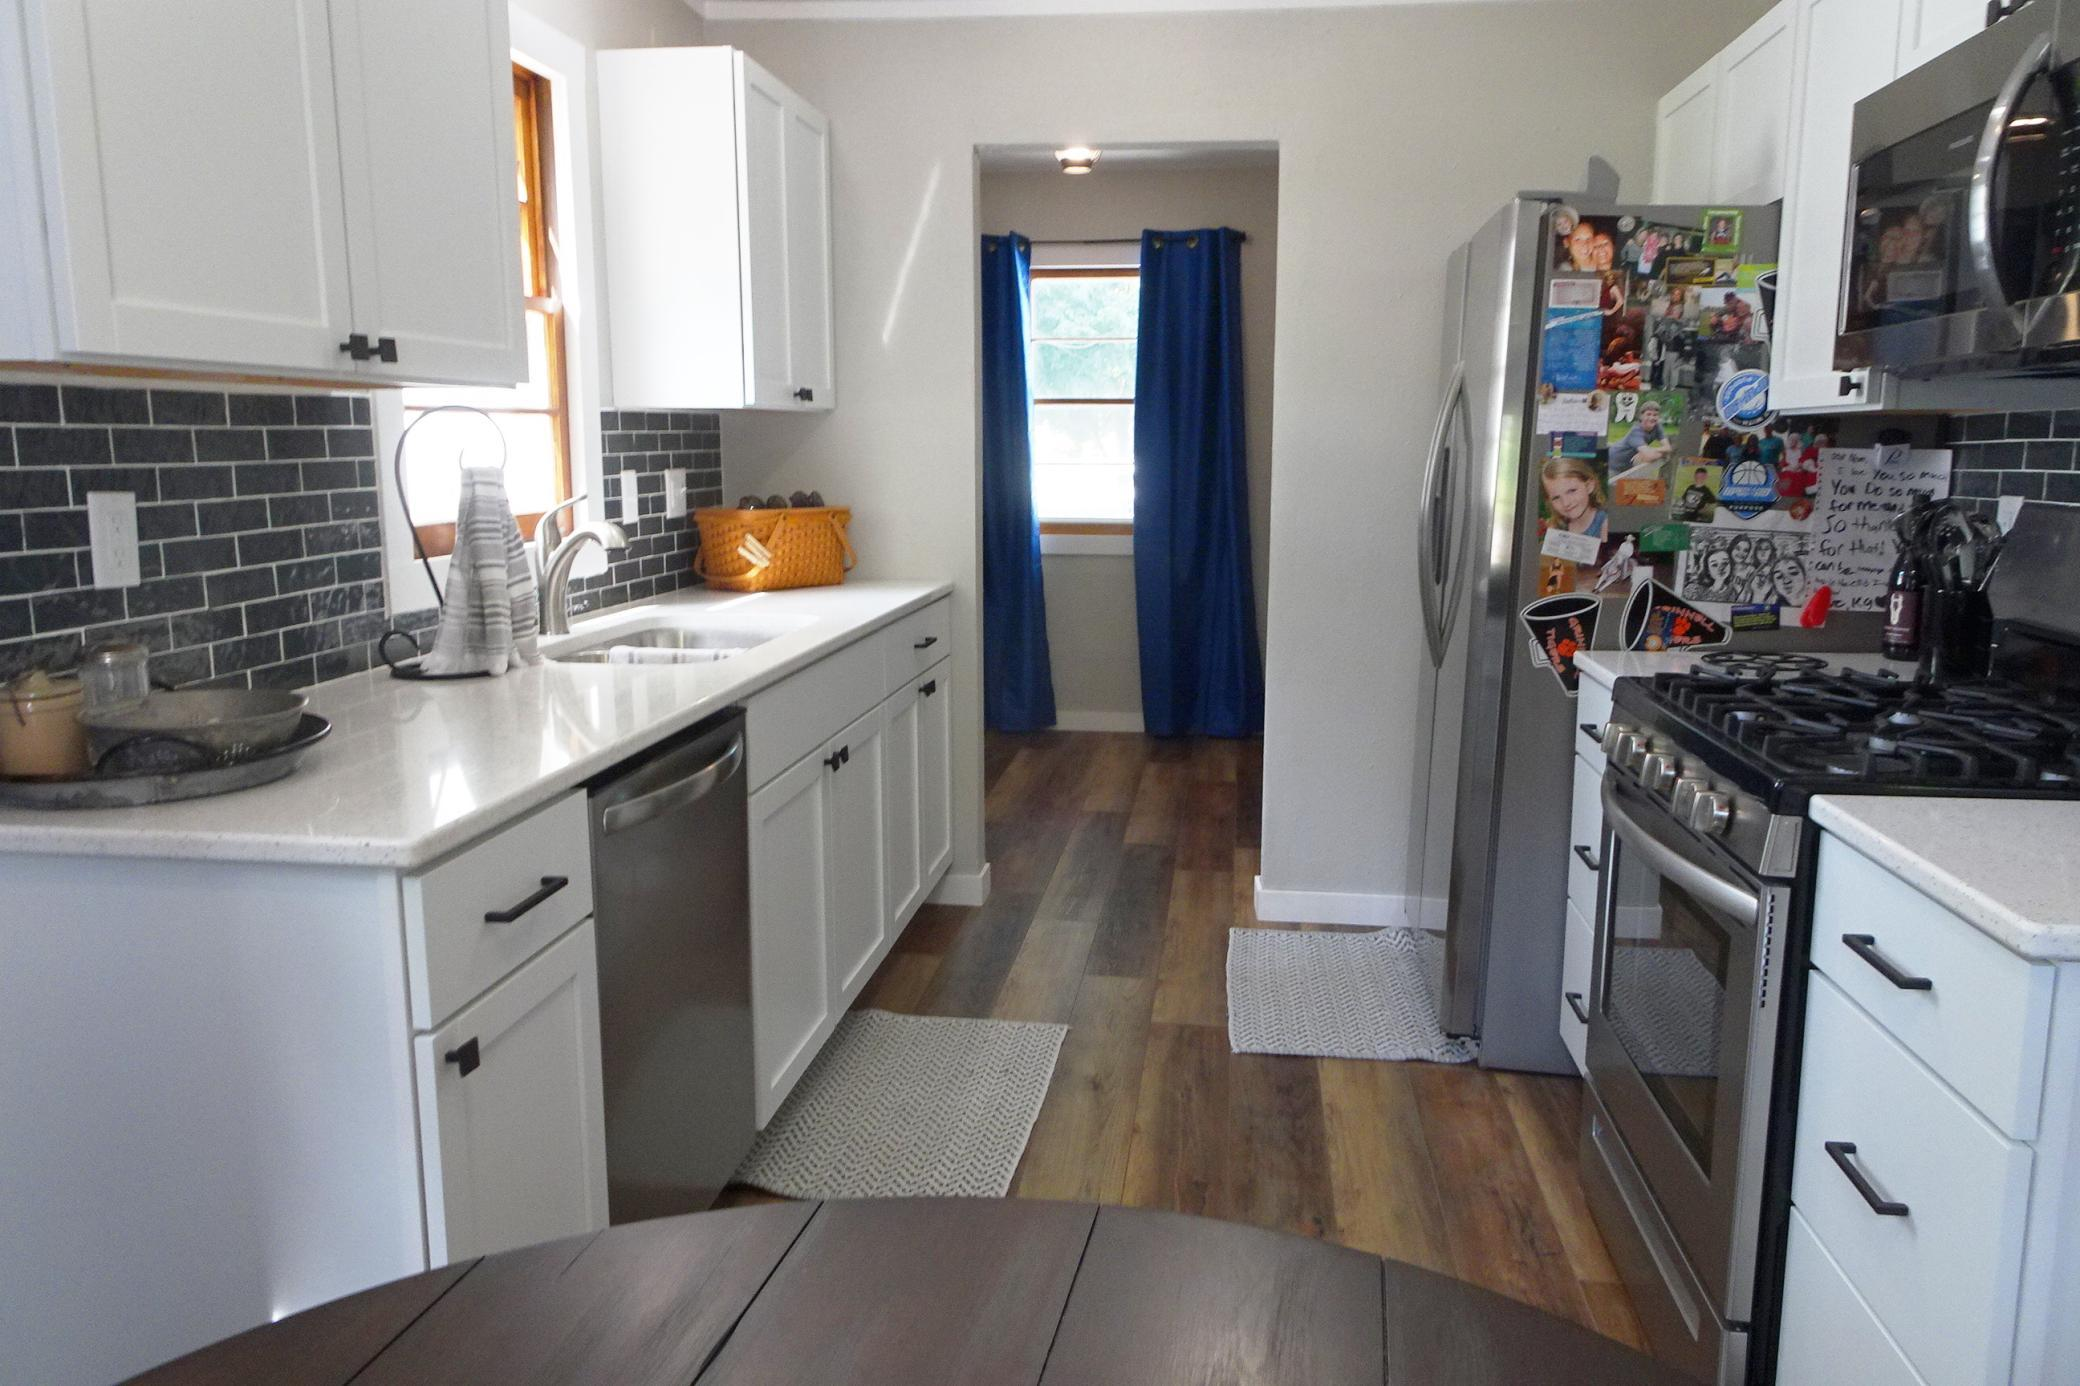 1527 Summer, Grinnell, Iowa 50112-1259, 2 Bedrooms Bedrooms, ,1 BathroomBathrooms,Single Family,For Sale,Summer,5632748